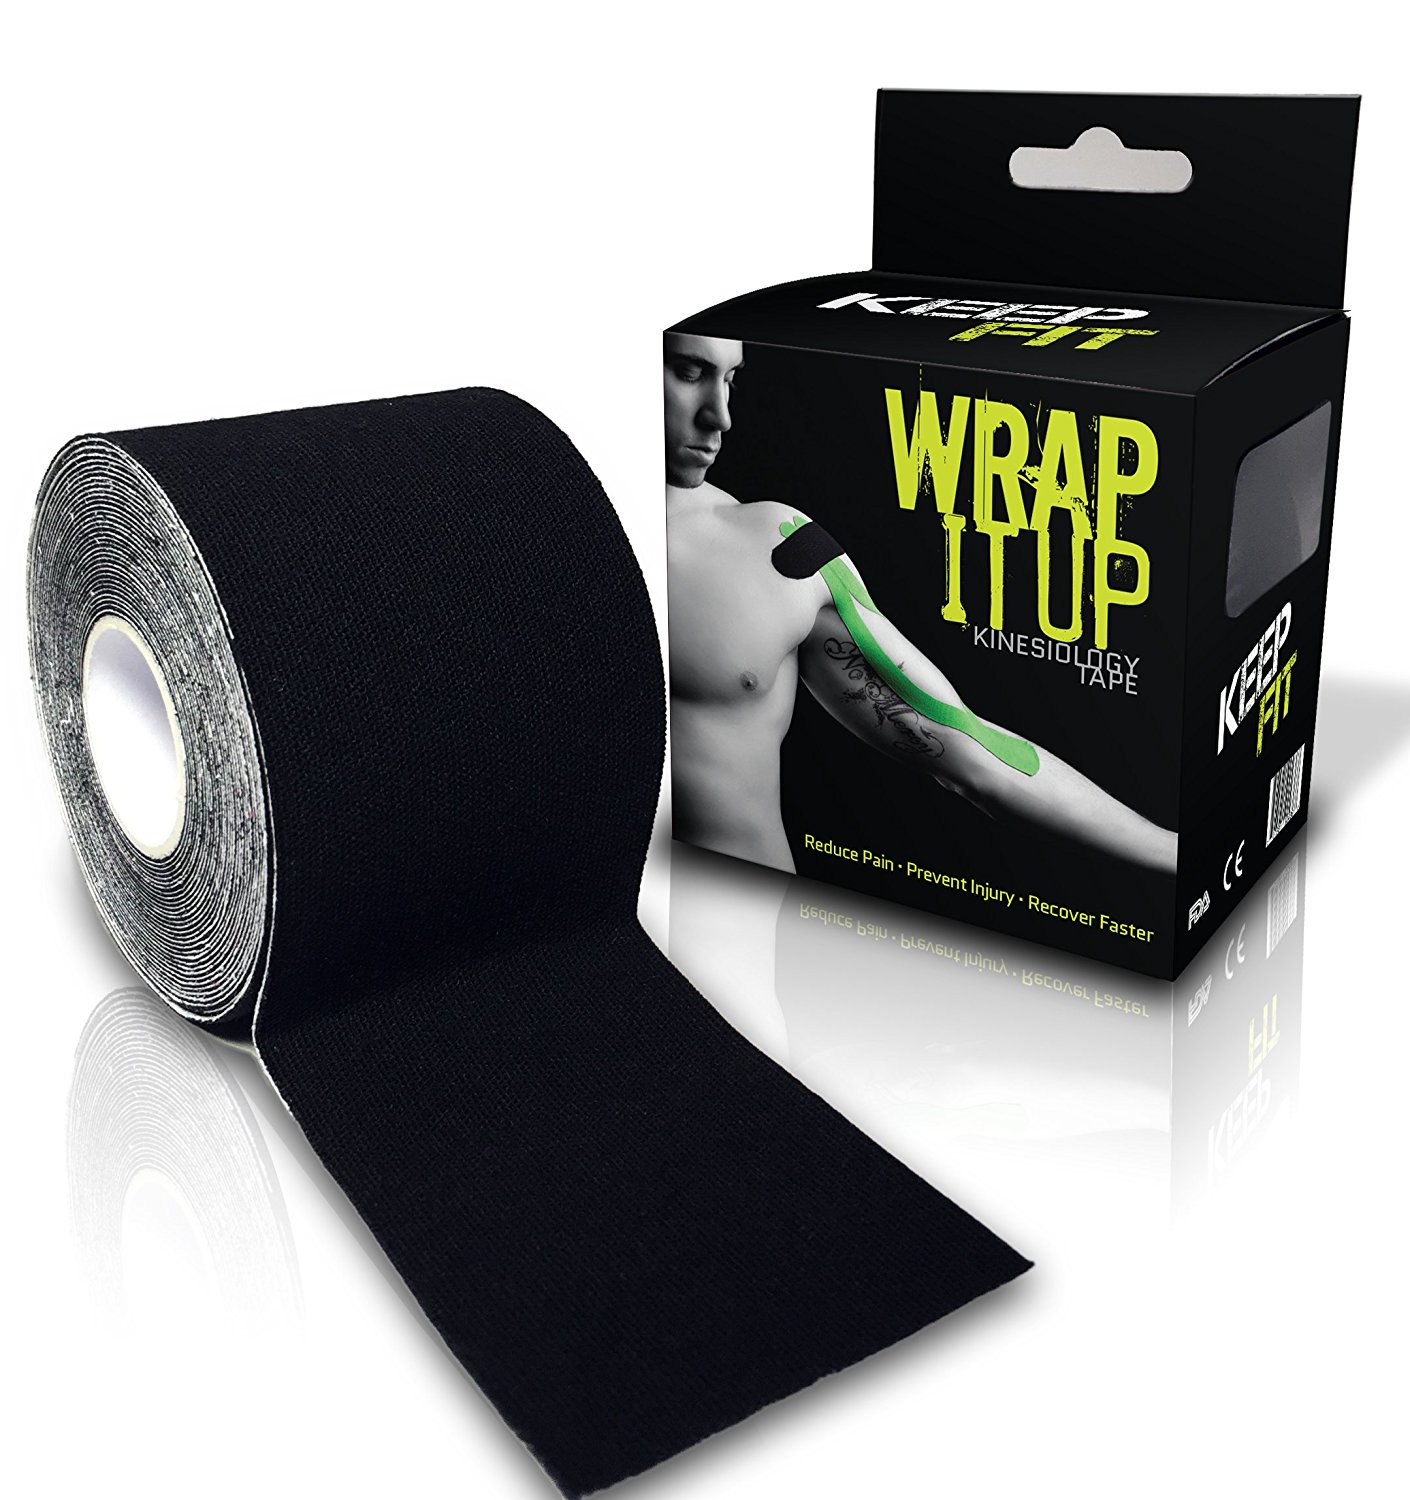 Kinesiology Tape Plus FREE eTaping Guide Wrap-It-Up with Premium Athletic Performance Tape, Advanced Adhesive, Water Resistant, and Highly Durable - Latest Adhesive Technology - Pro grade 2 in. x 16.4 ft. Uncut Roll Perfect for any Athlete or Therapeutic Needs. Crossfit Tested and Approved © 2014